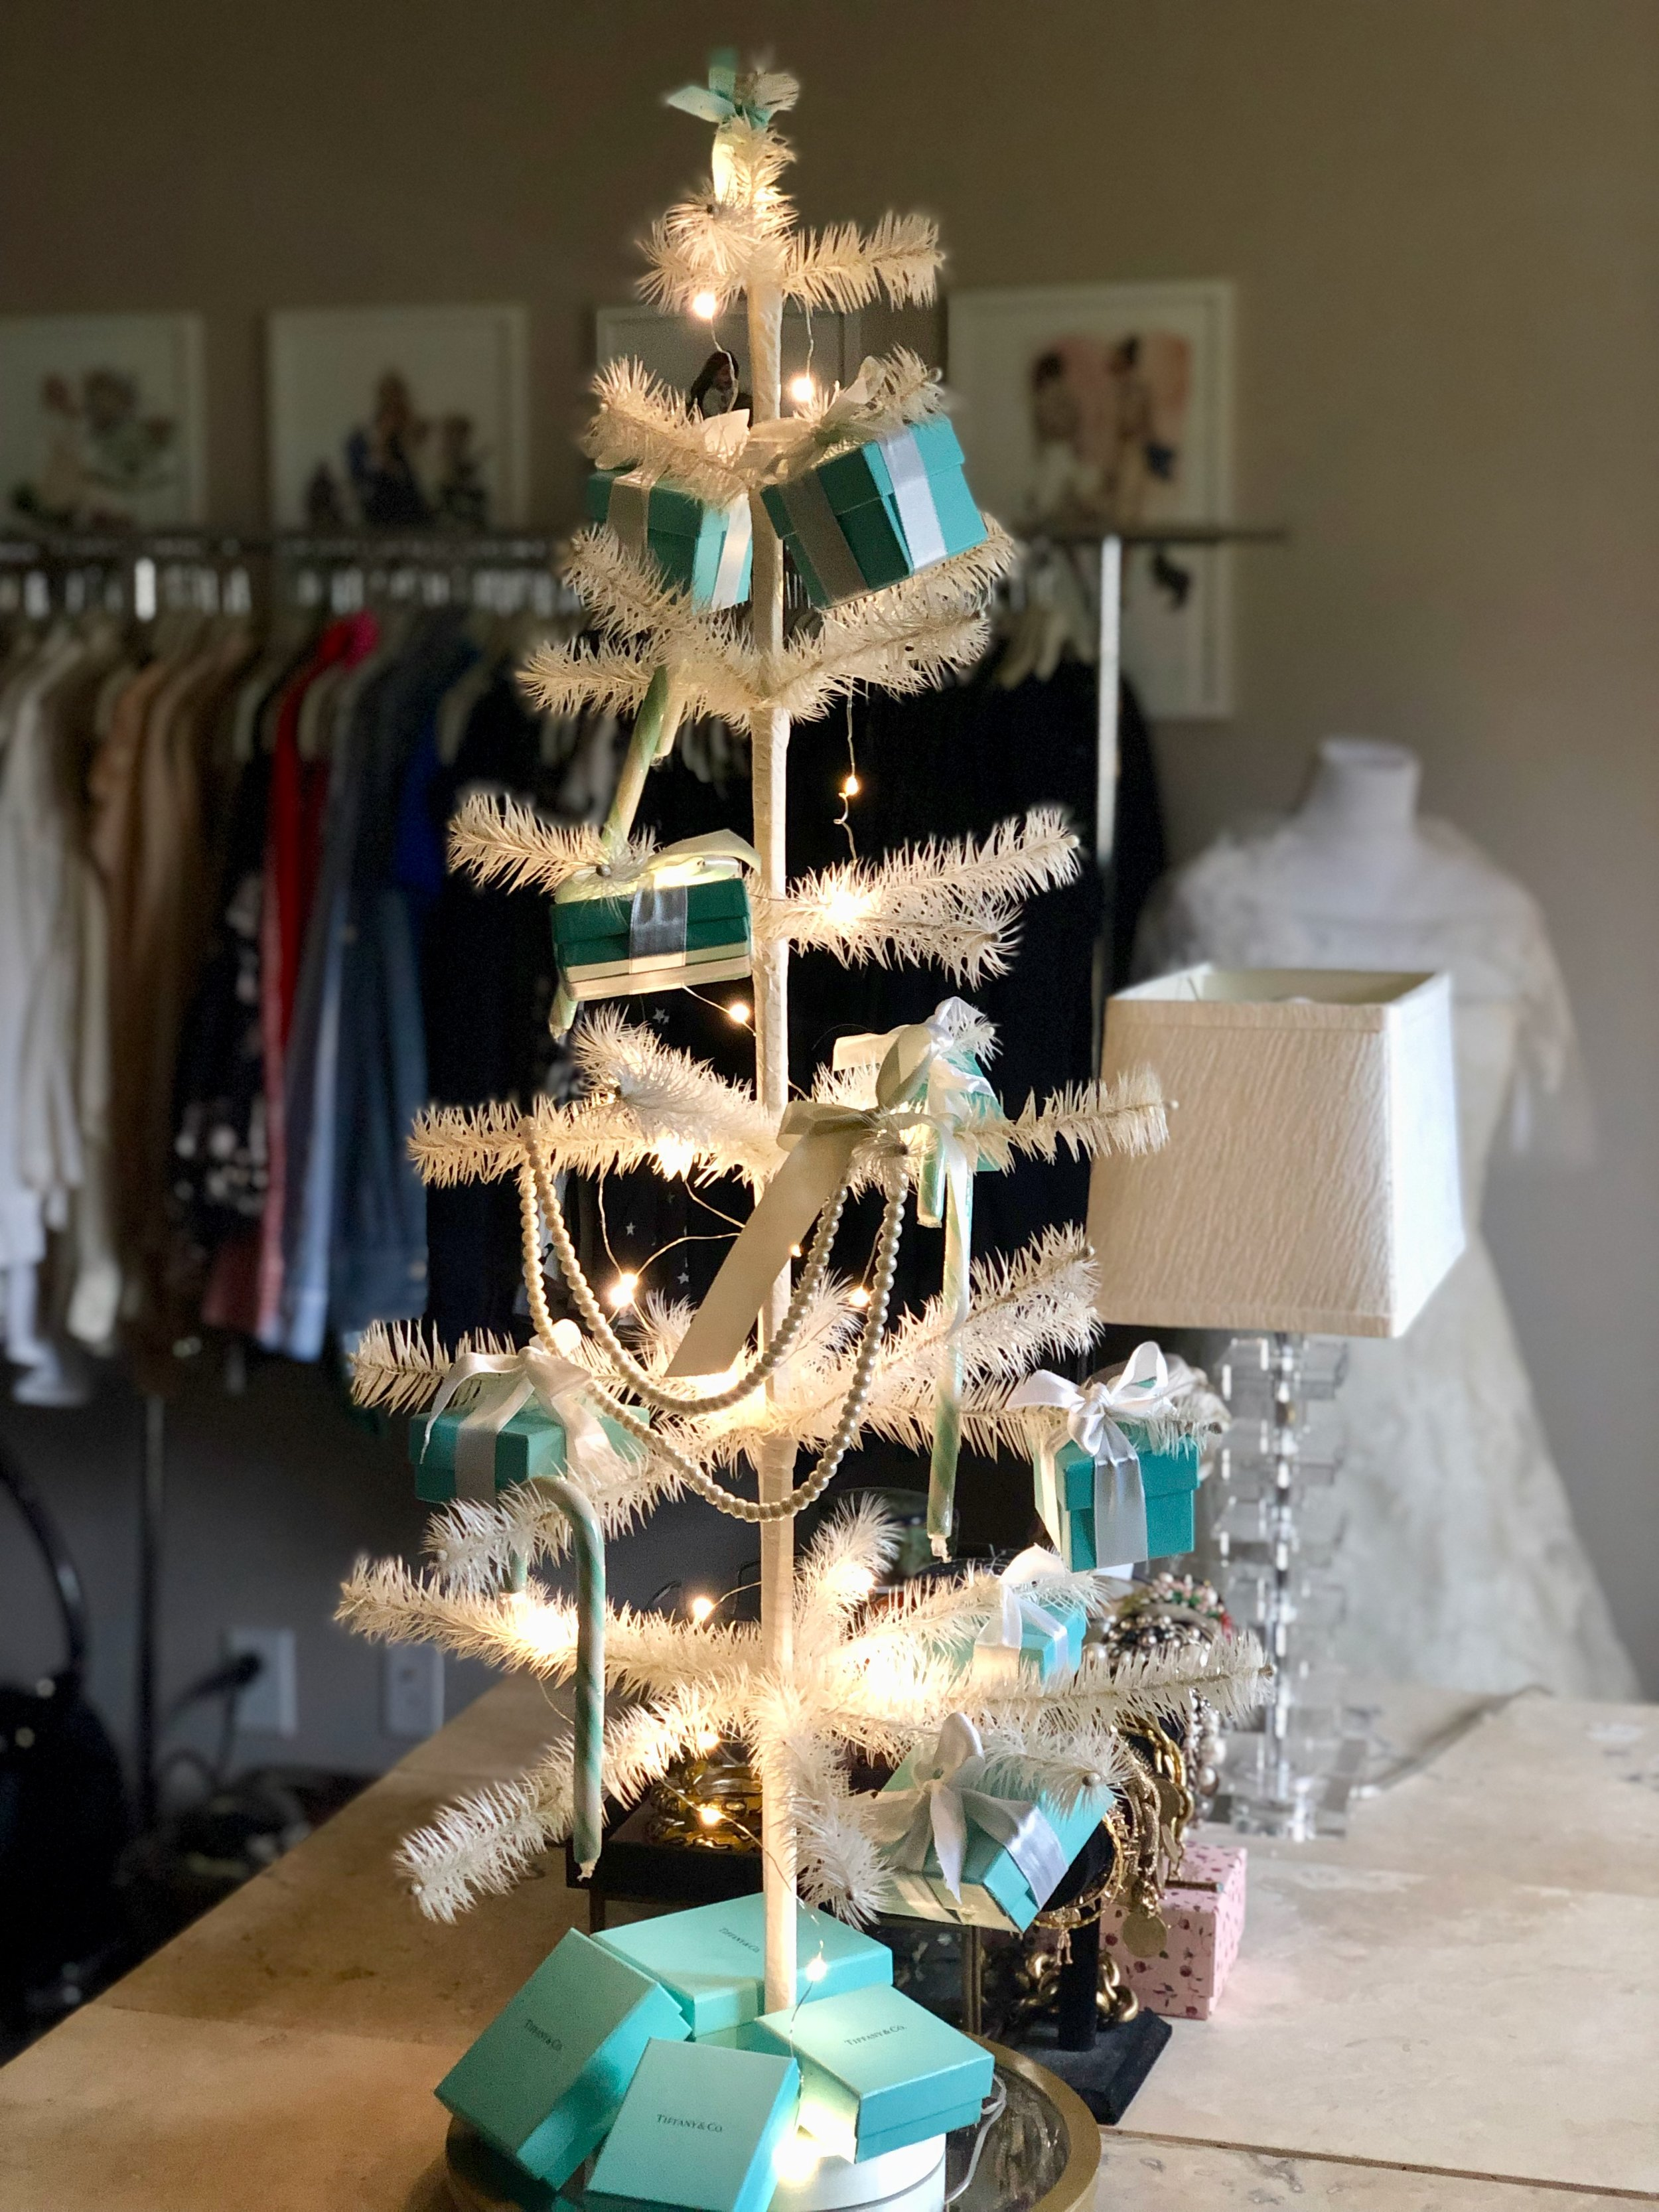 Little Tiffany feather tree in my closet